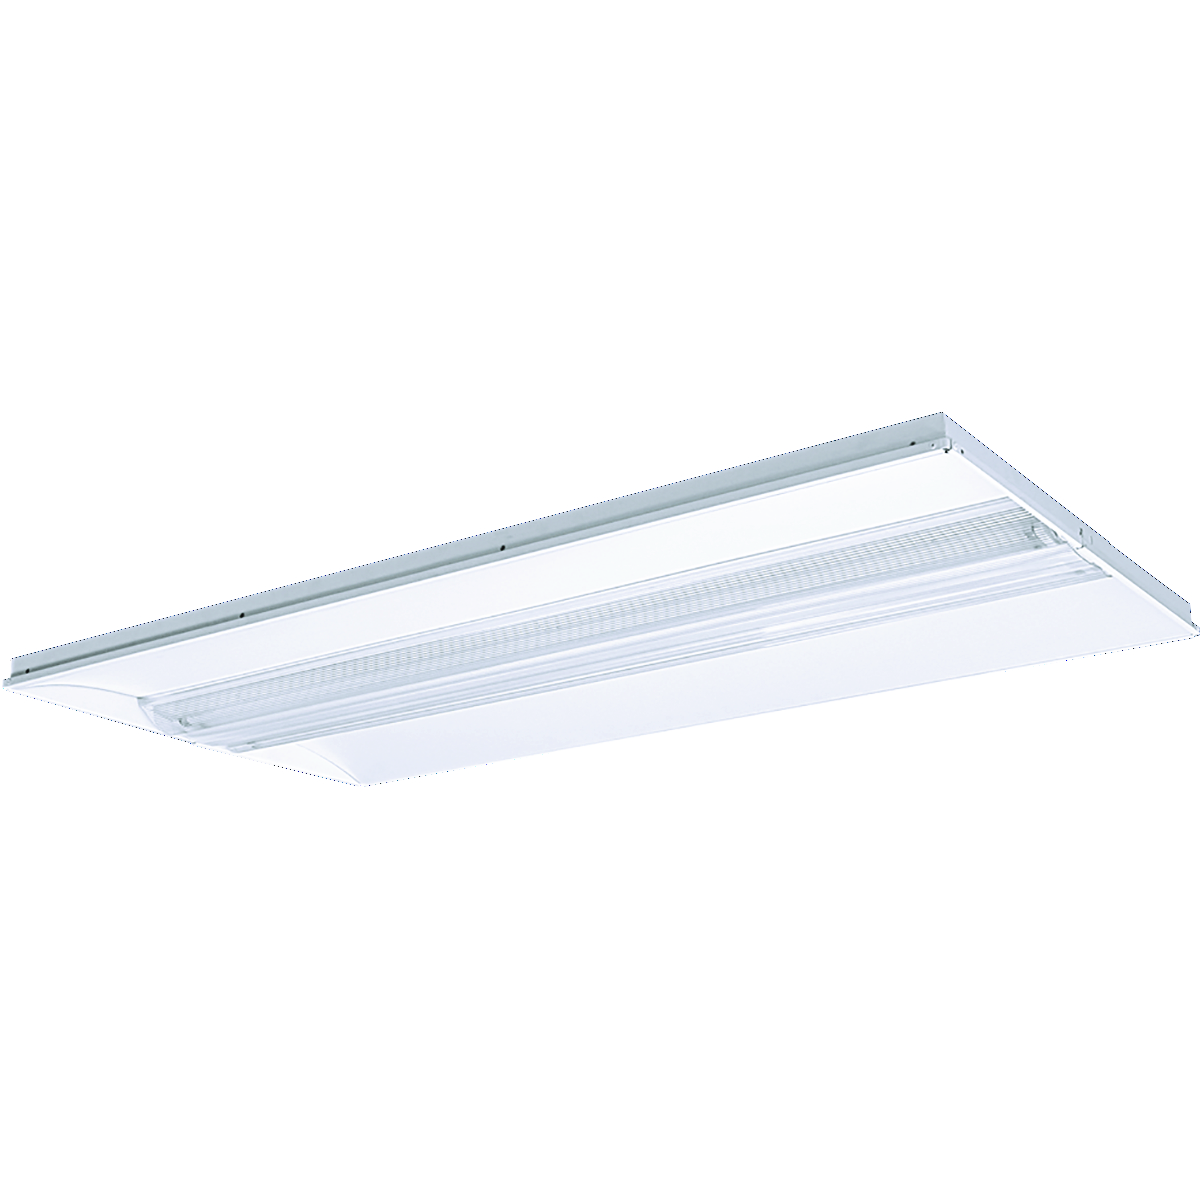 by Columbia Lighting. COL_ZPT_PRODIMAGE  sc 1 st  Hubbell & ZPT | Recessed Linear Troffers | Commercial Indoor Lighting ... azcodes.com